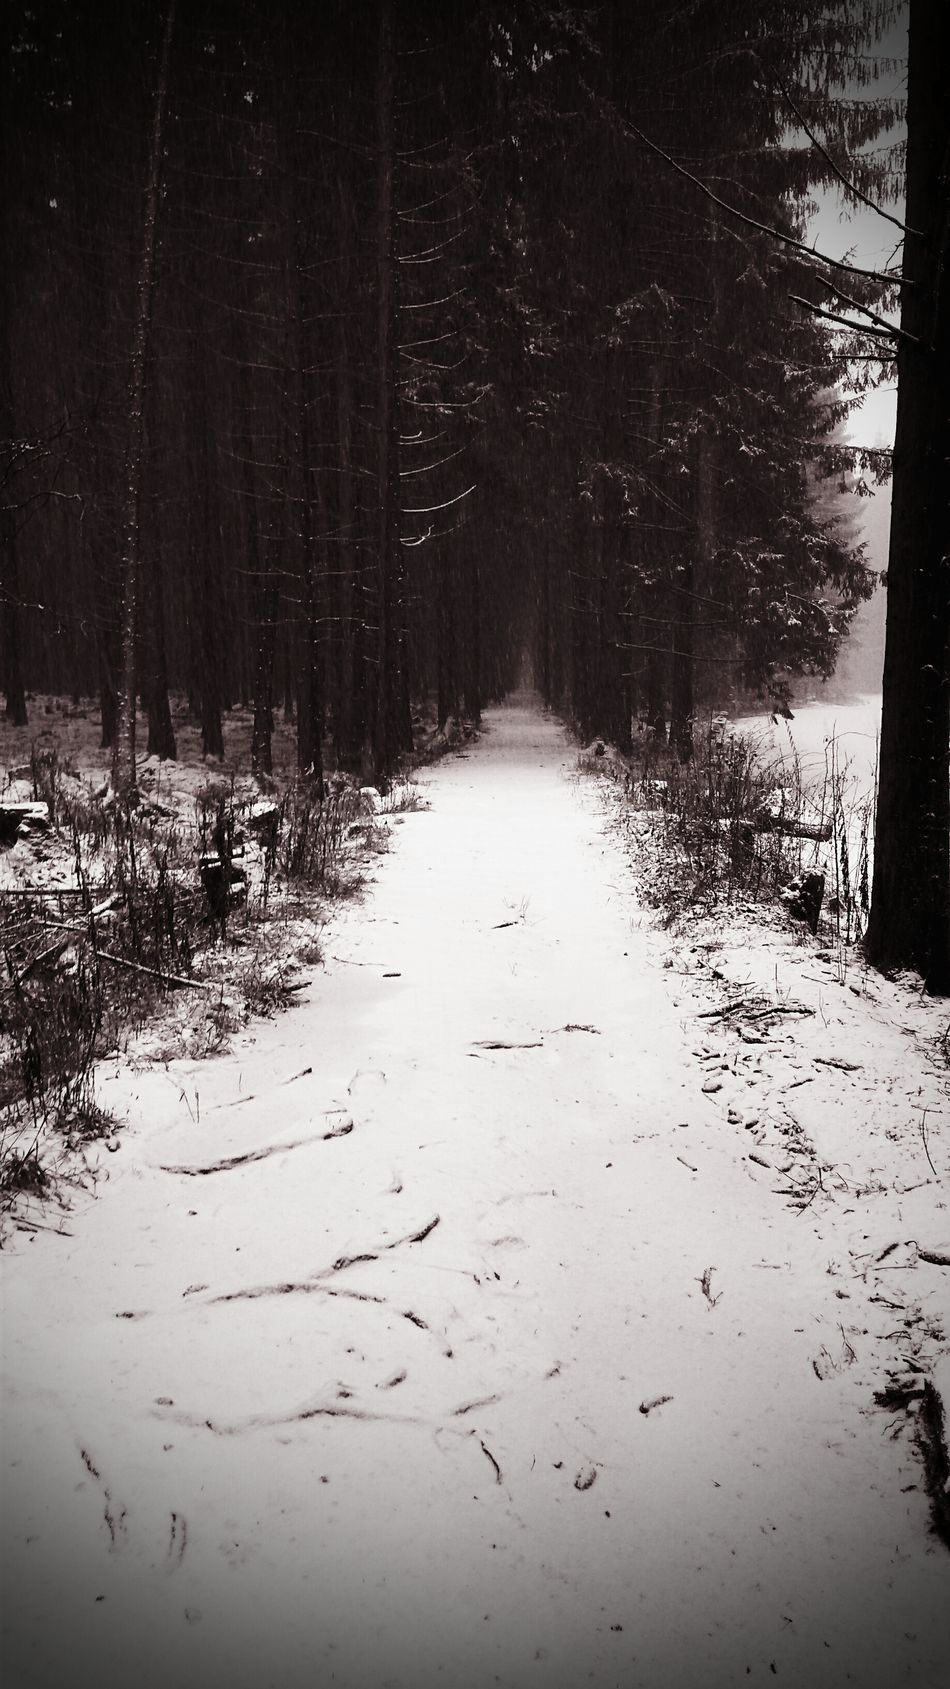 Nature Tree Snow Winter Beauty In Nature Outdoors Landscape Cold Temperature Growth Forest Blackandwhite Walking Zuberec Roháče Morning Morning Walk